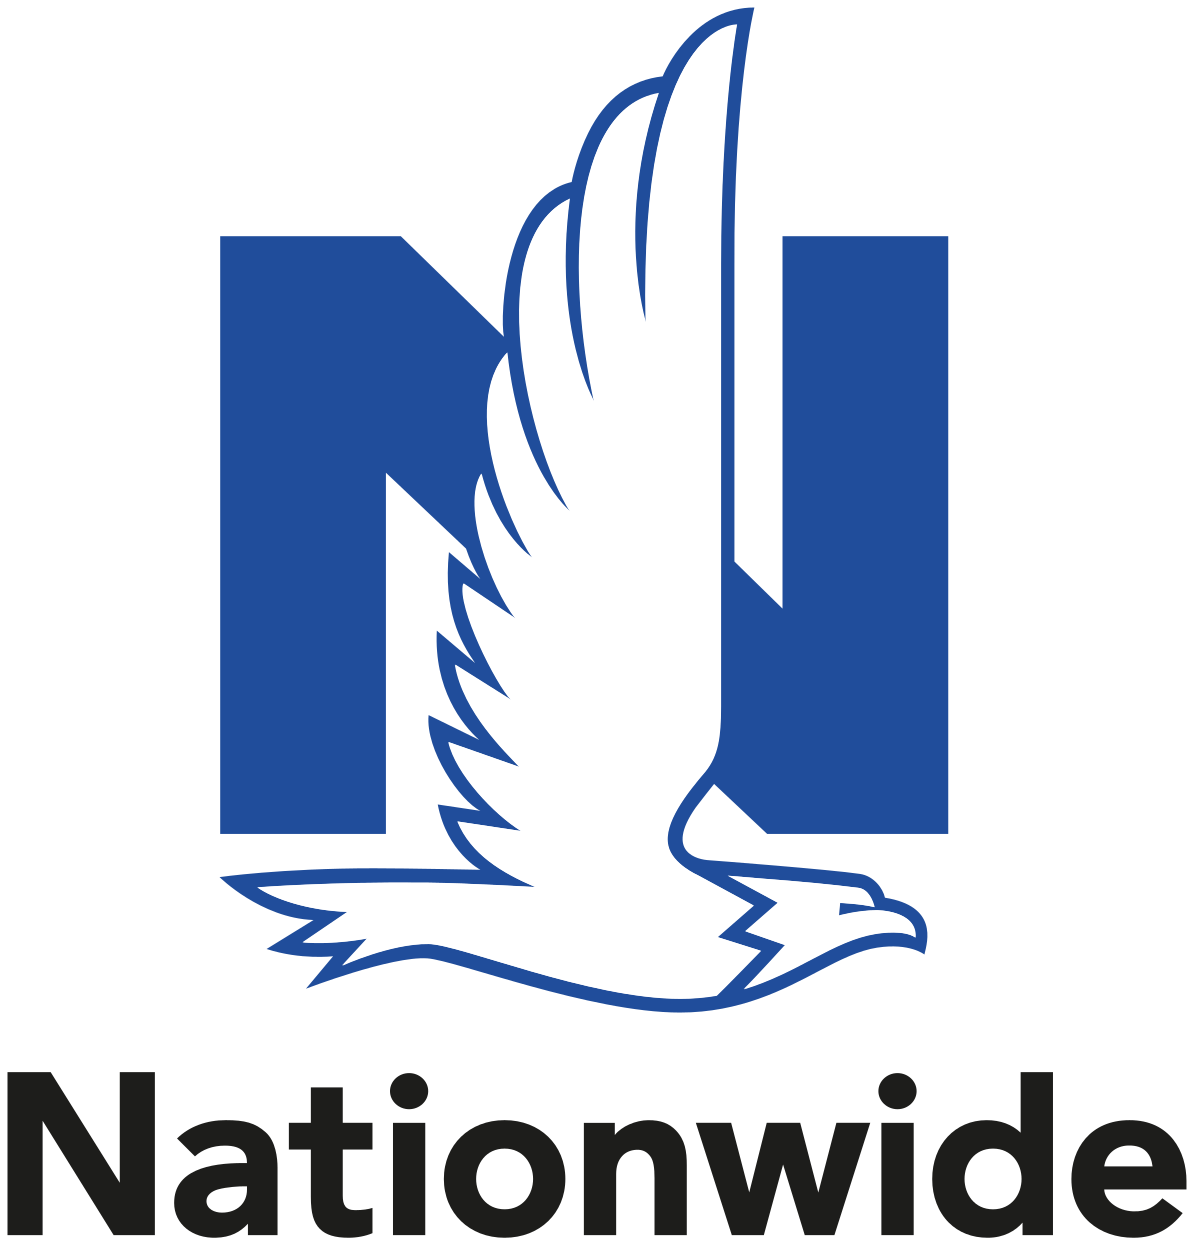 American national insurance logo clipart clip black and white stock Nationwide Mutual Insurance Company - Wikipedia clip black and white stock